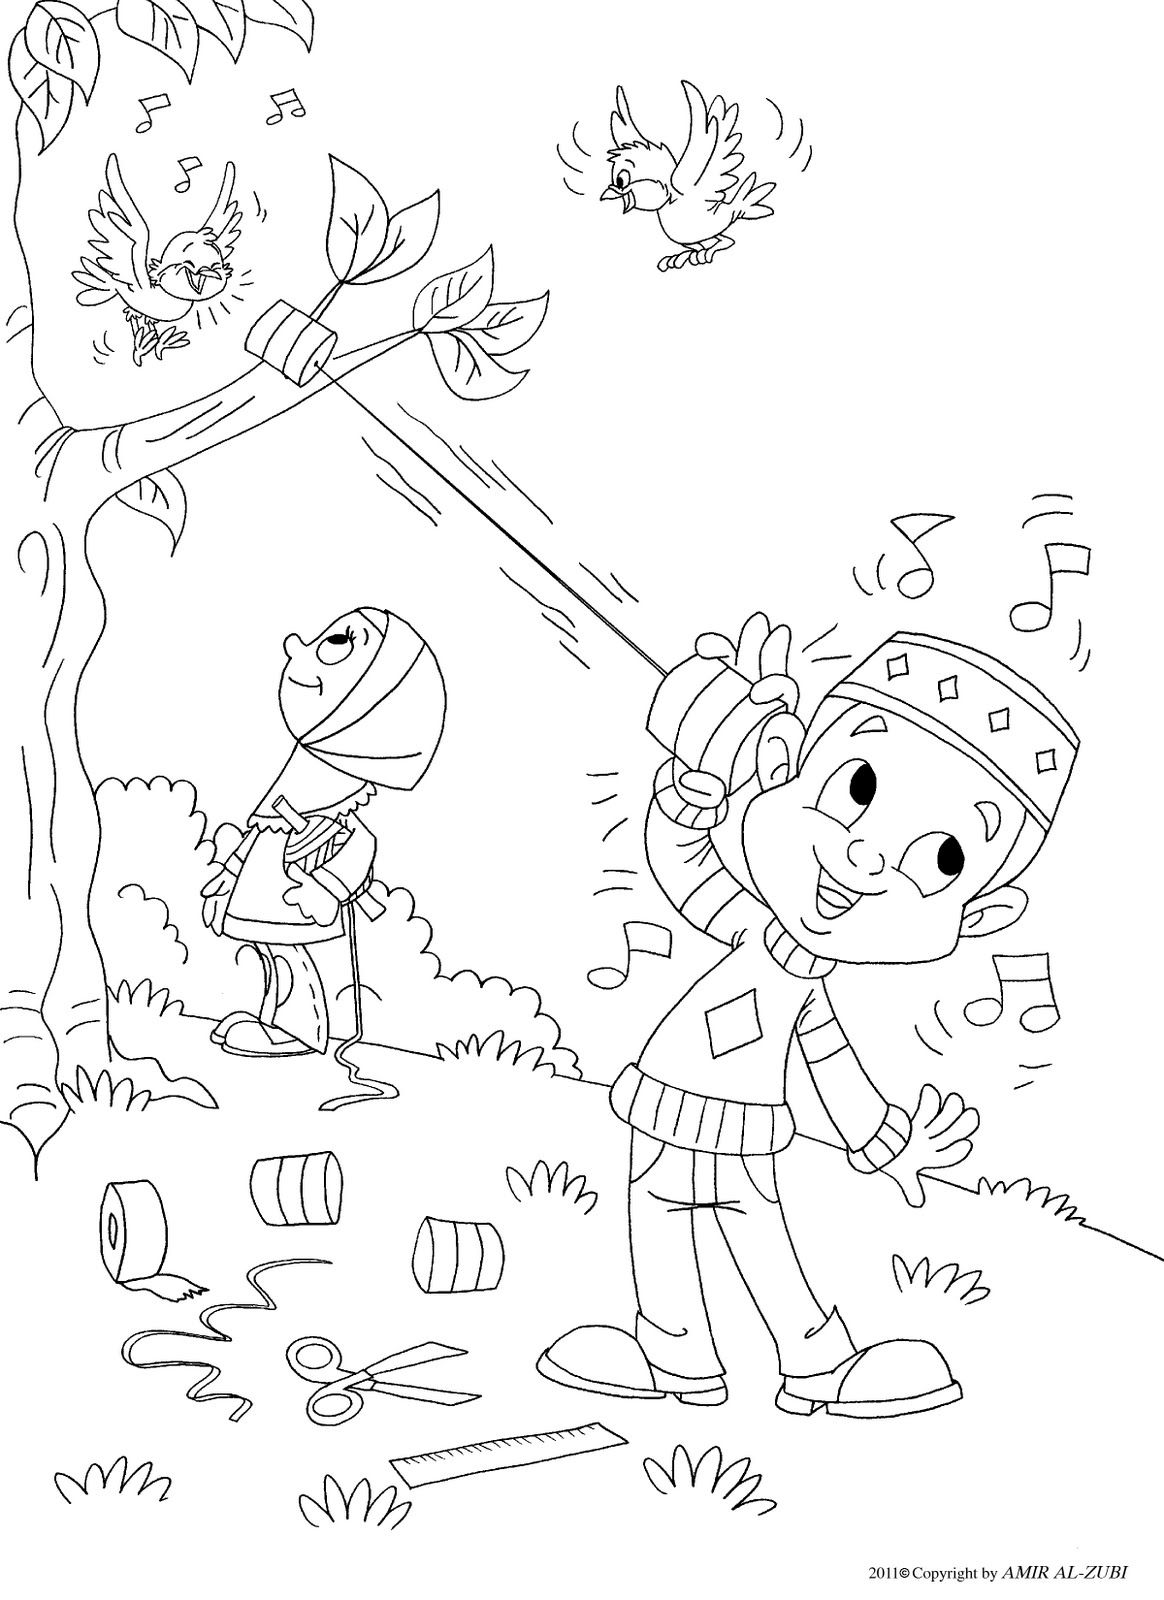 Outside coloring page Muslim boy | Coloriages islamiques in 2018 ...